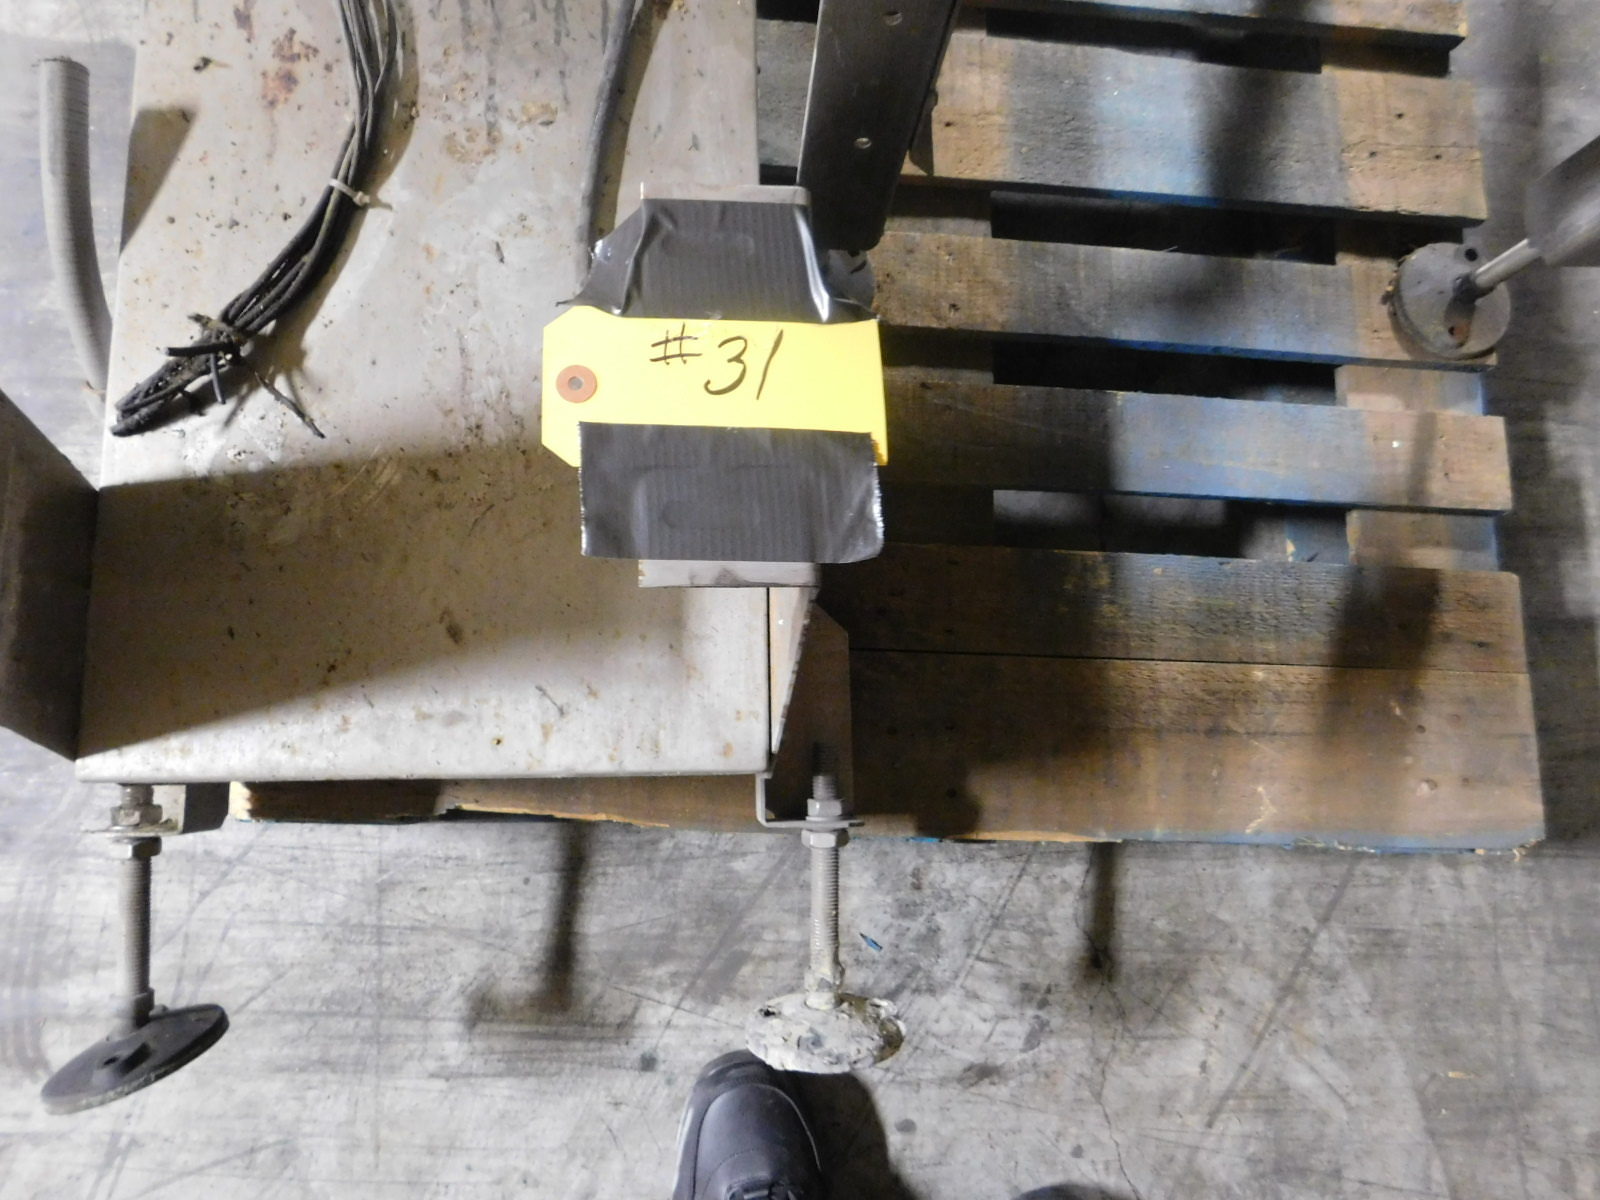 Lot 31 - Ramsey Icore autolock 8000 Ramsey checkweigher with conveyor SN:99177286 :equipment located at Clark